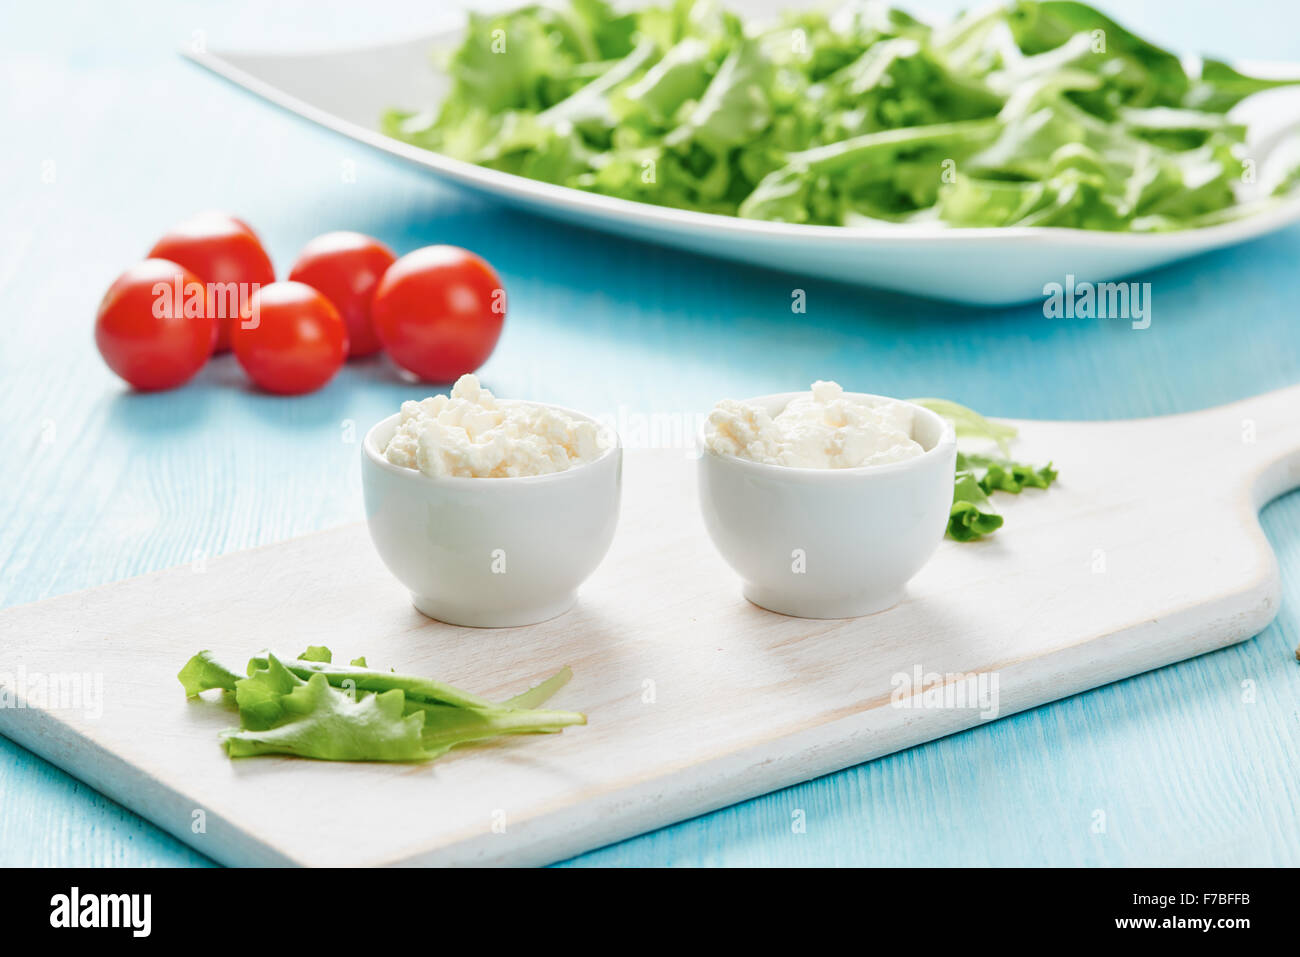 Cottage cheese in two white bowls on blue wooden table, salad and tomato - Stock Image